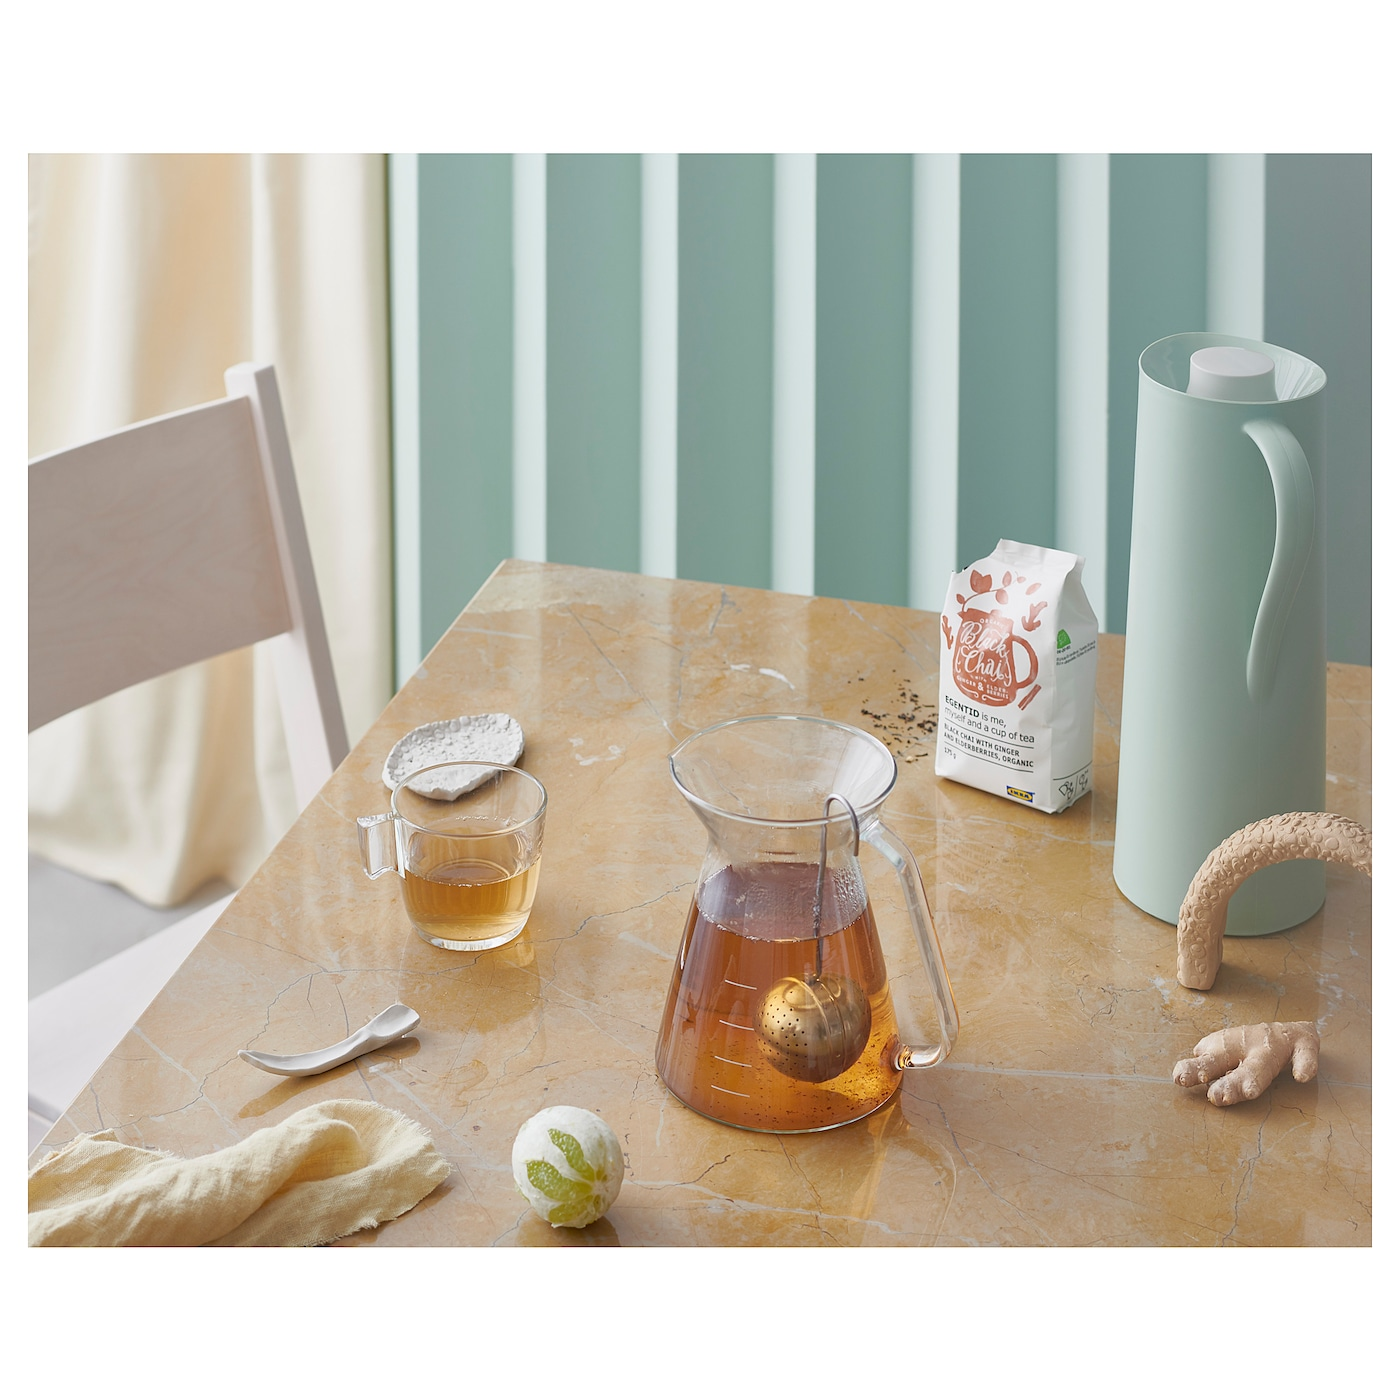 IKEA STELNA mug Made of tempered glass, which makes the mug durable and extra resistant to impact.